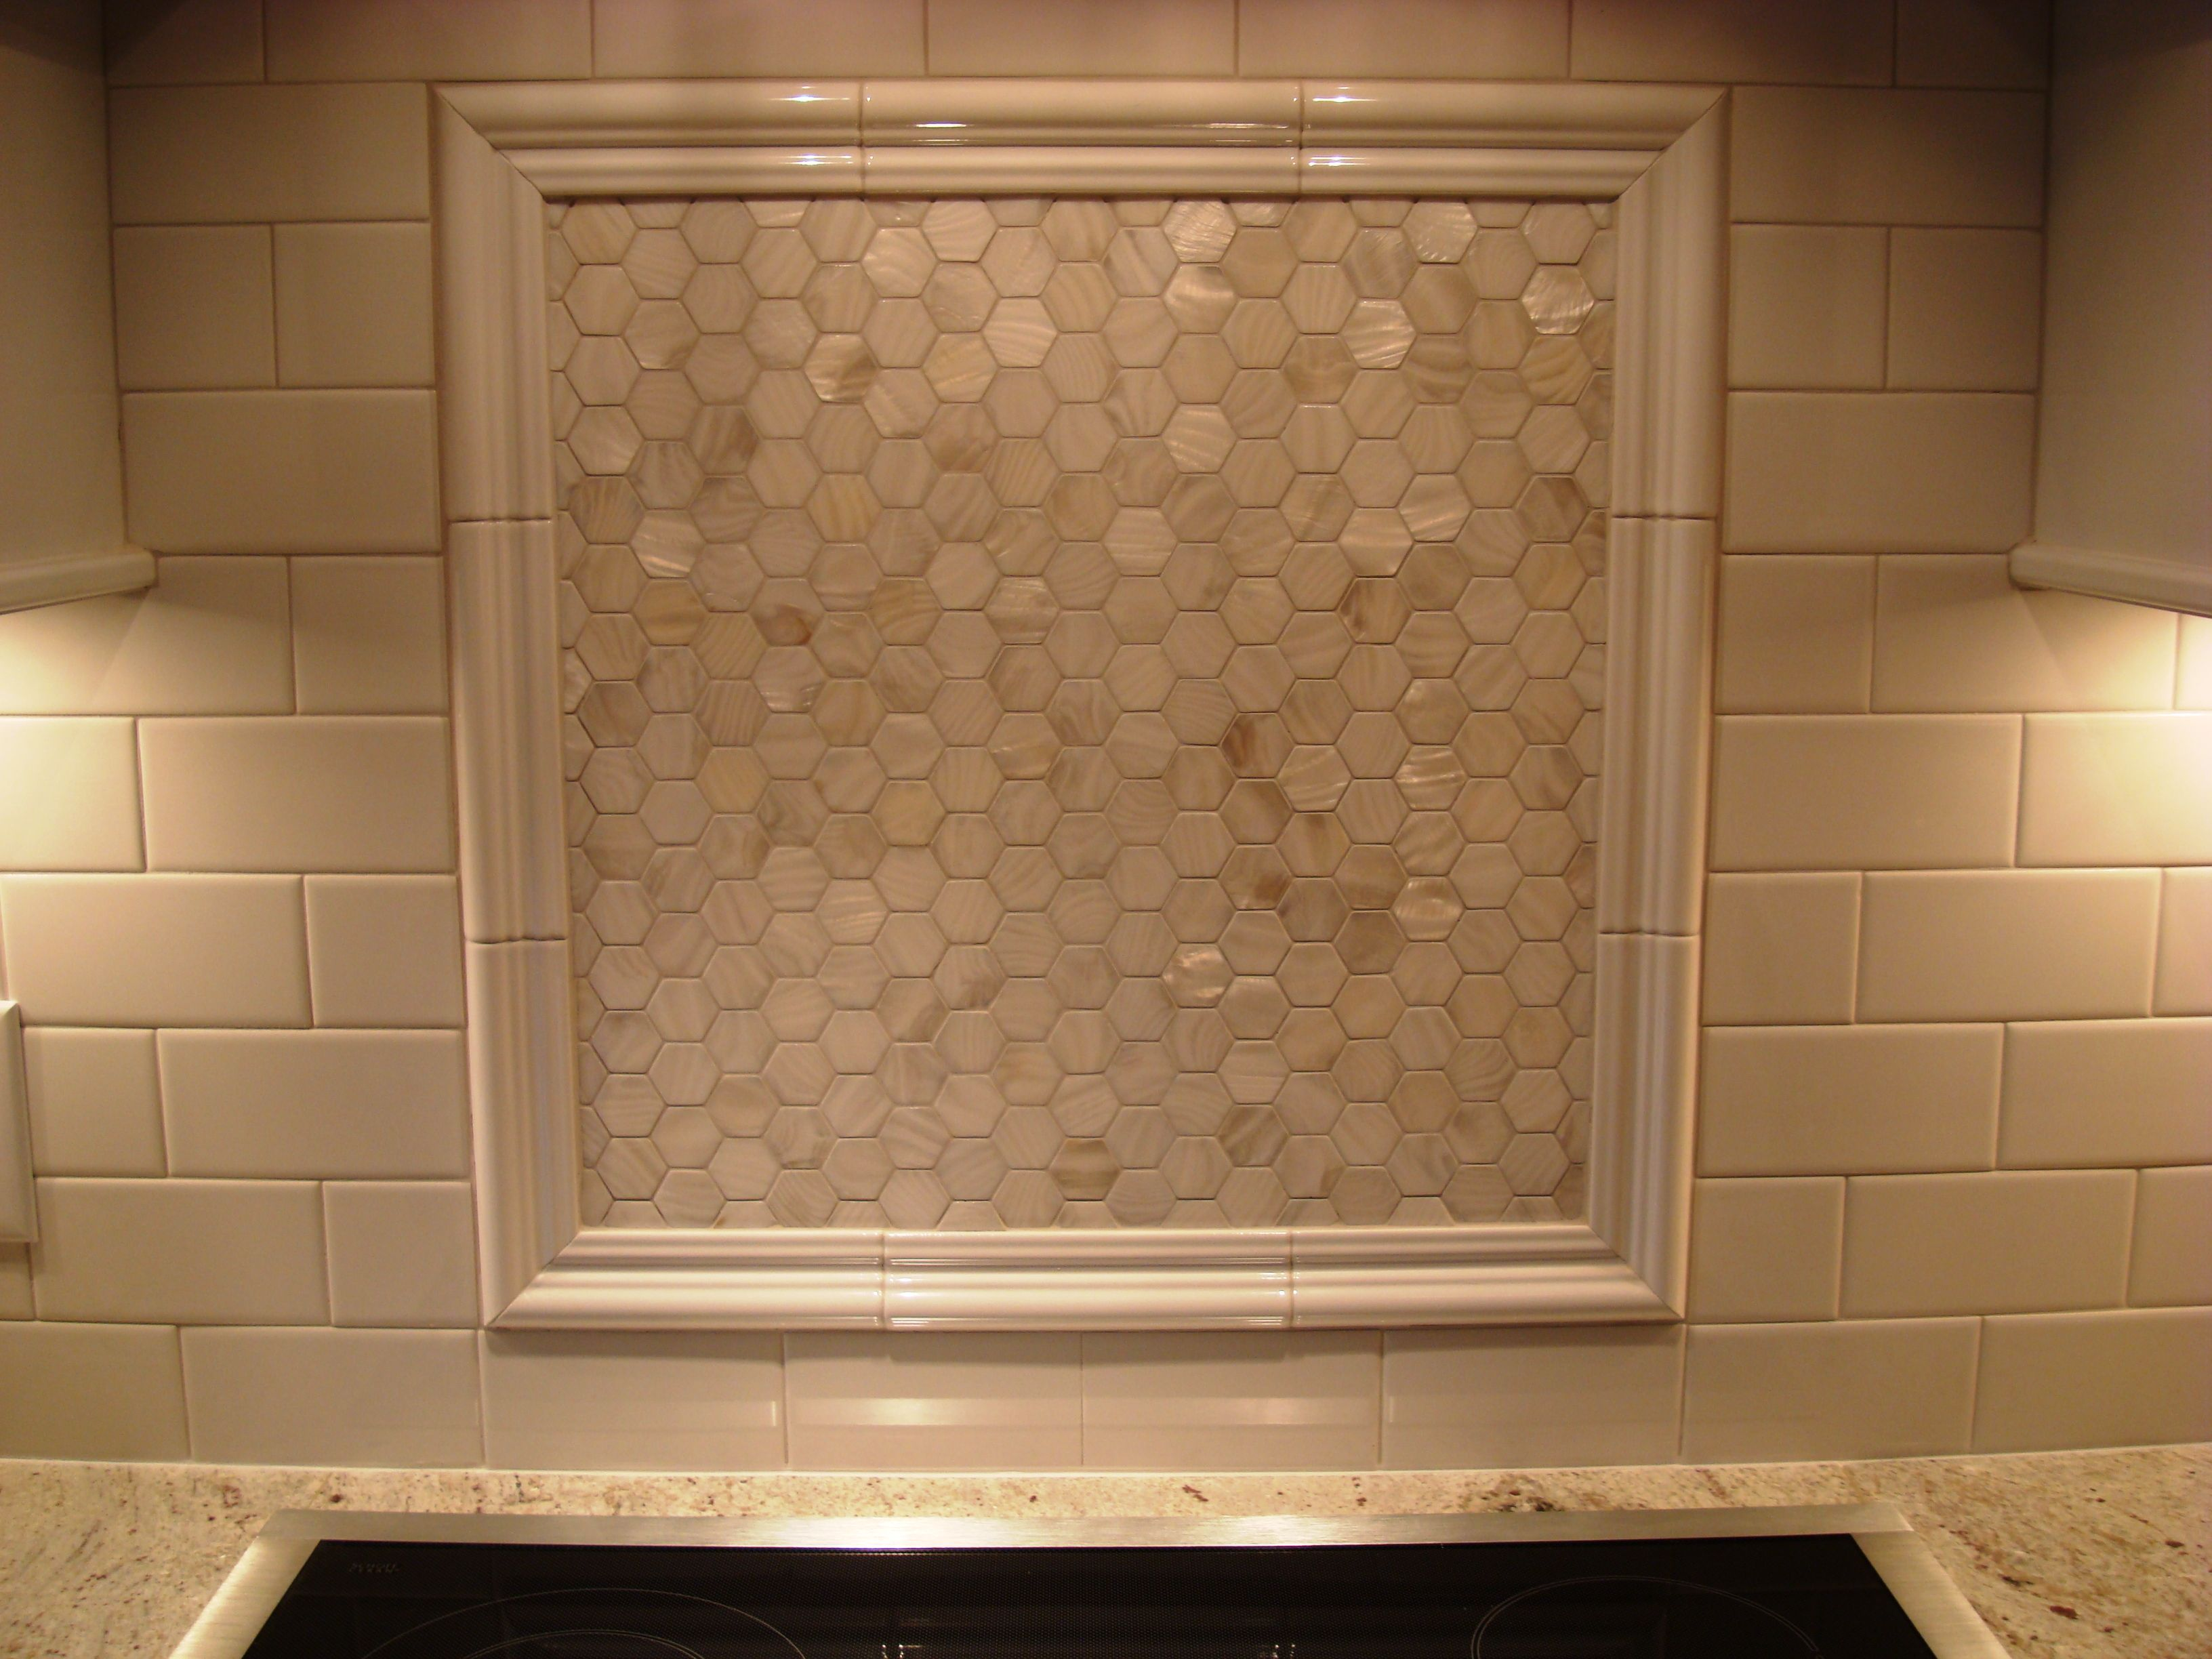 Backsplash Accent Ideas Over The Stove Backsplash The Mother Of Pearl Backsplash